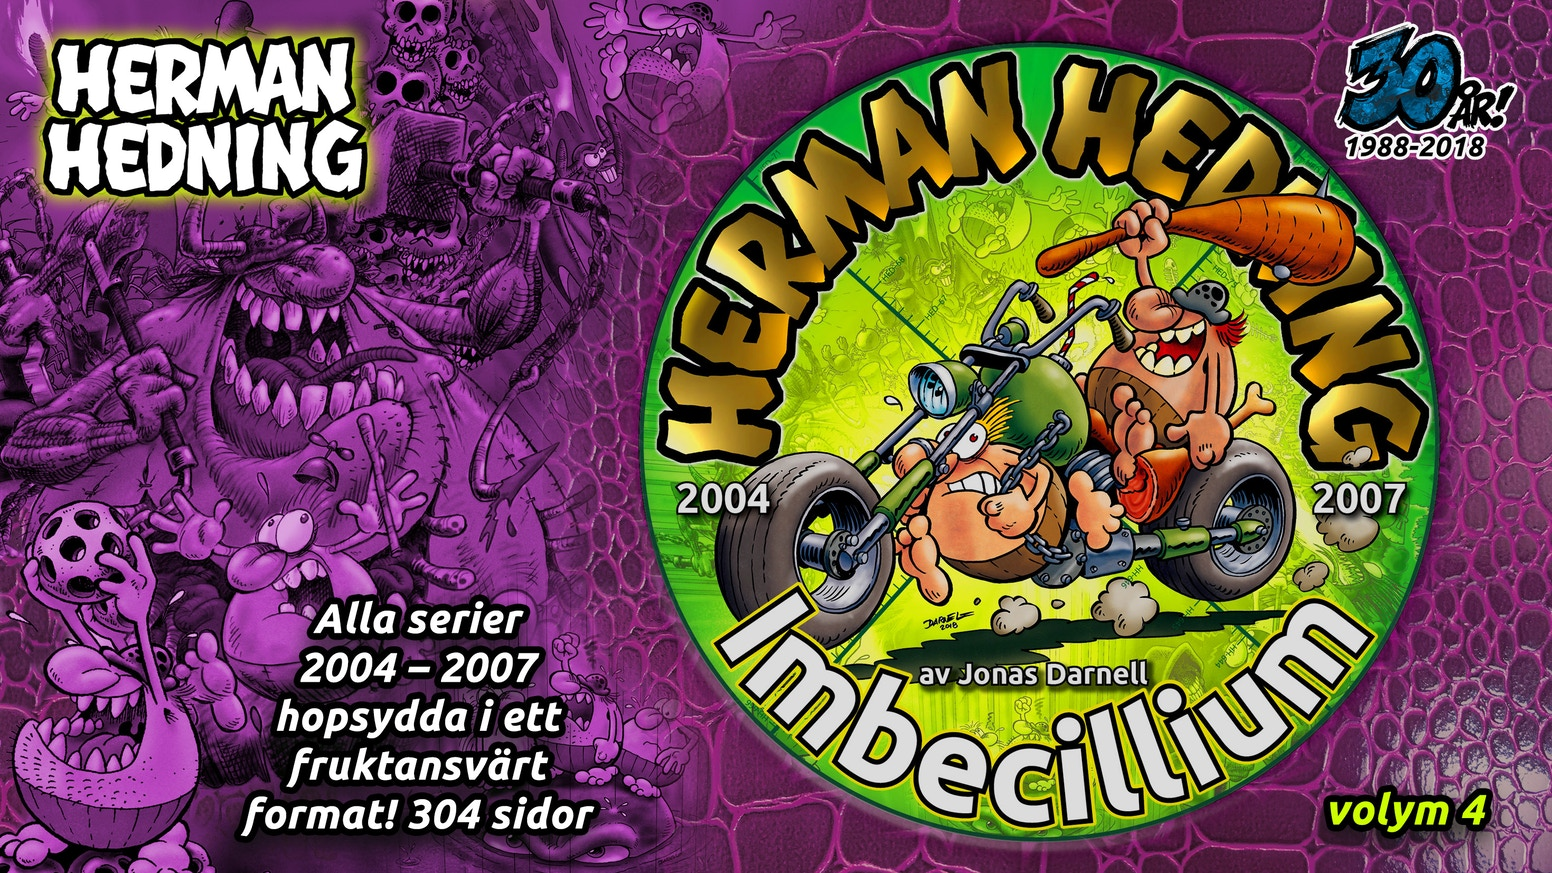 An anthology of Herman Hedning comics – the 4th in line – with all strips and stories from the year 2004 to 2007 – 304 pages.